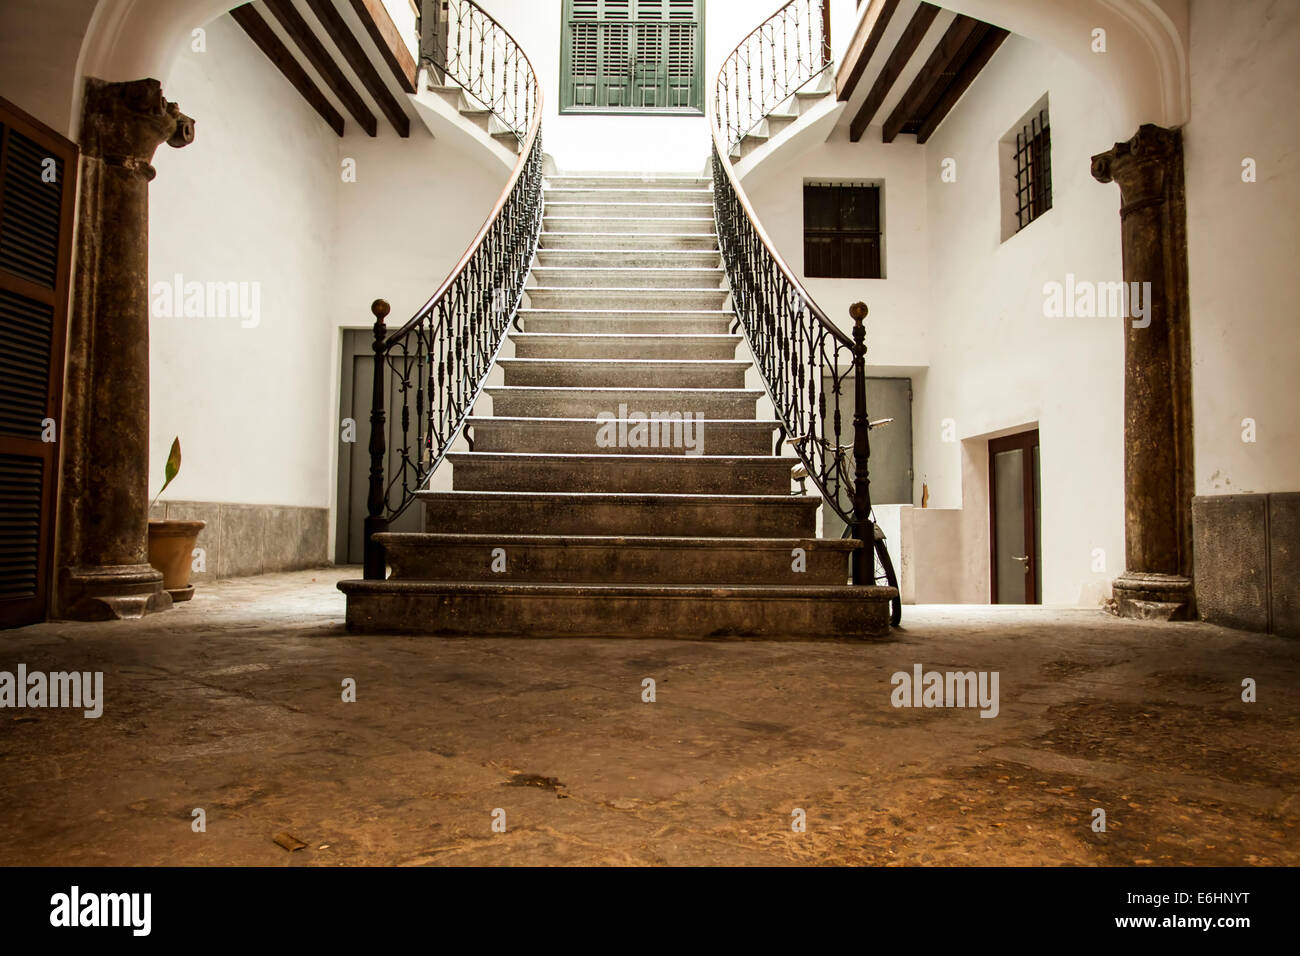 vintage photo of ancient castle interior stock photo, royalty free